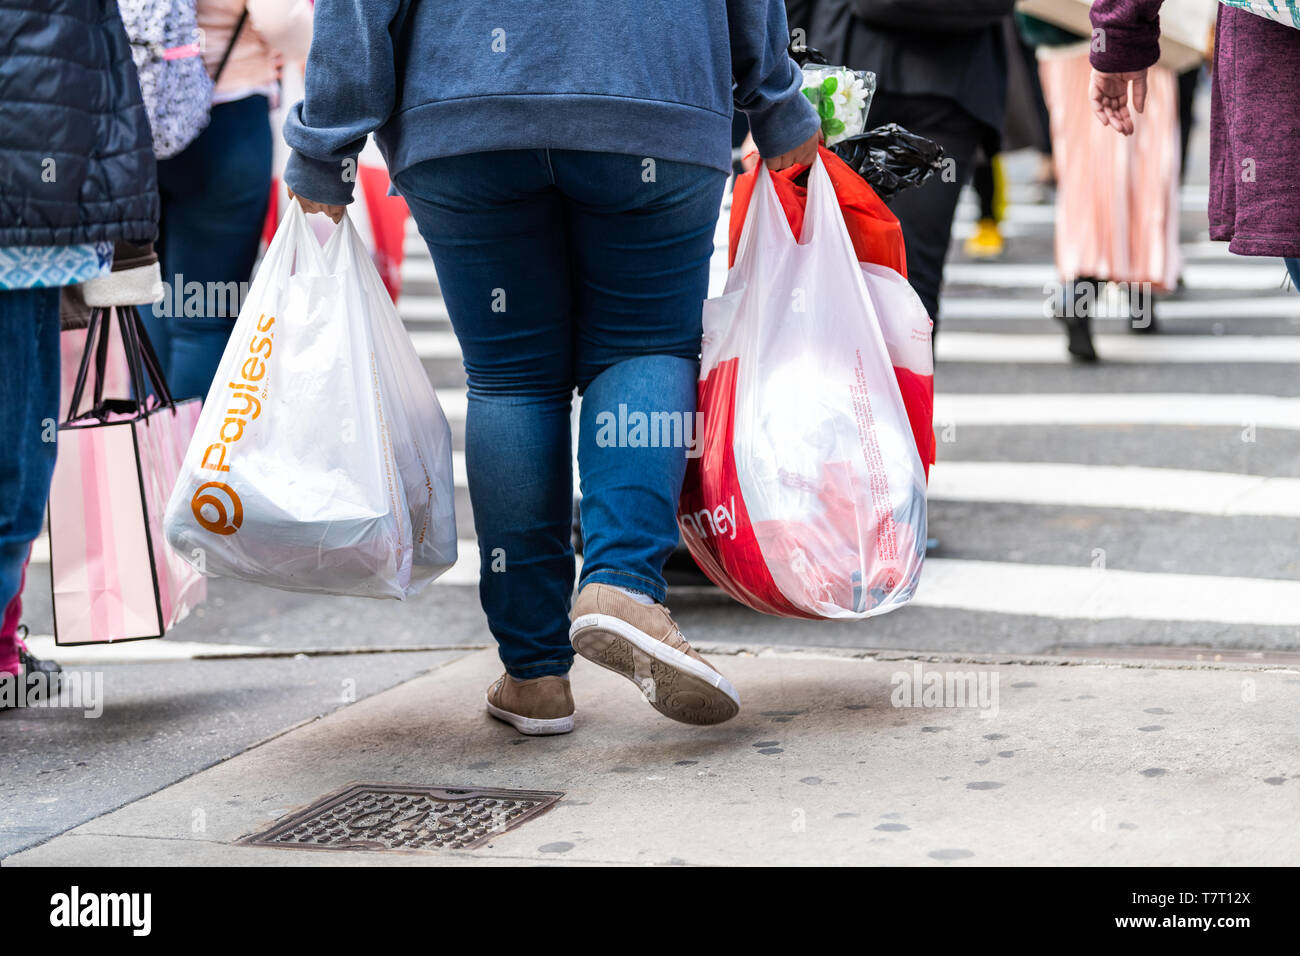 New York City, USA - April 6, 2018: Manhattan NYC sidewalk in midtown on 6th avenue road and closeup of people walking woman carrying Payless and JCPe Stock Photo